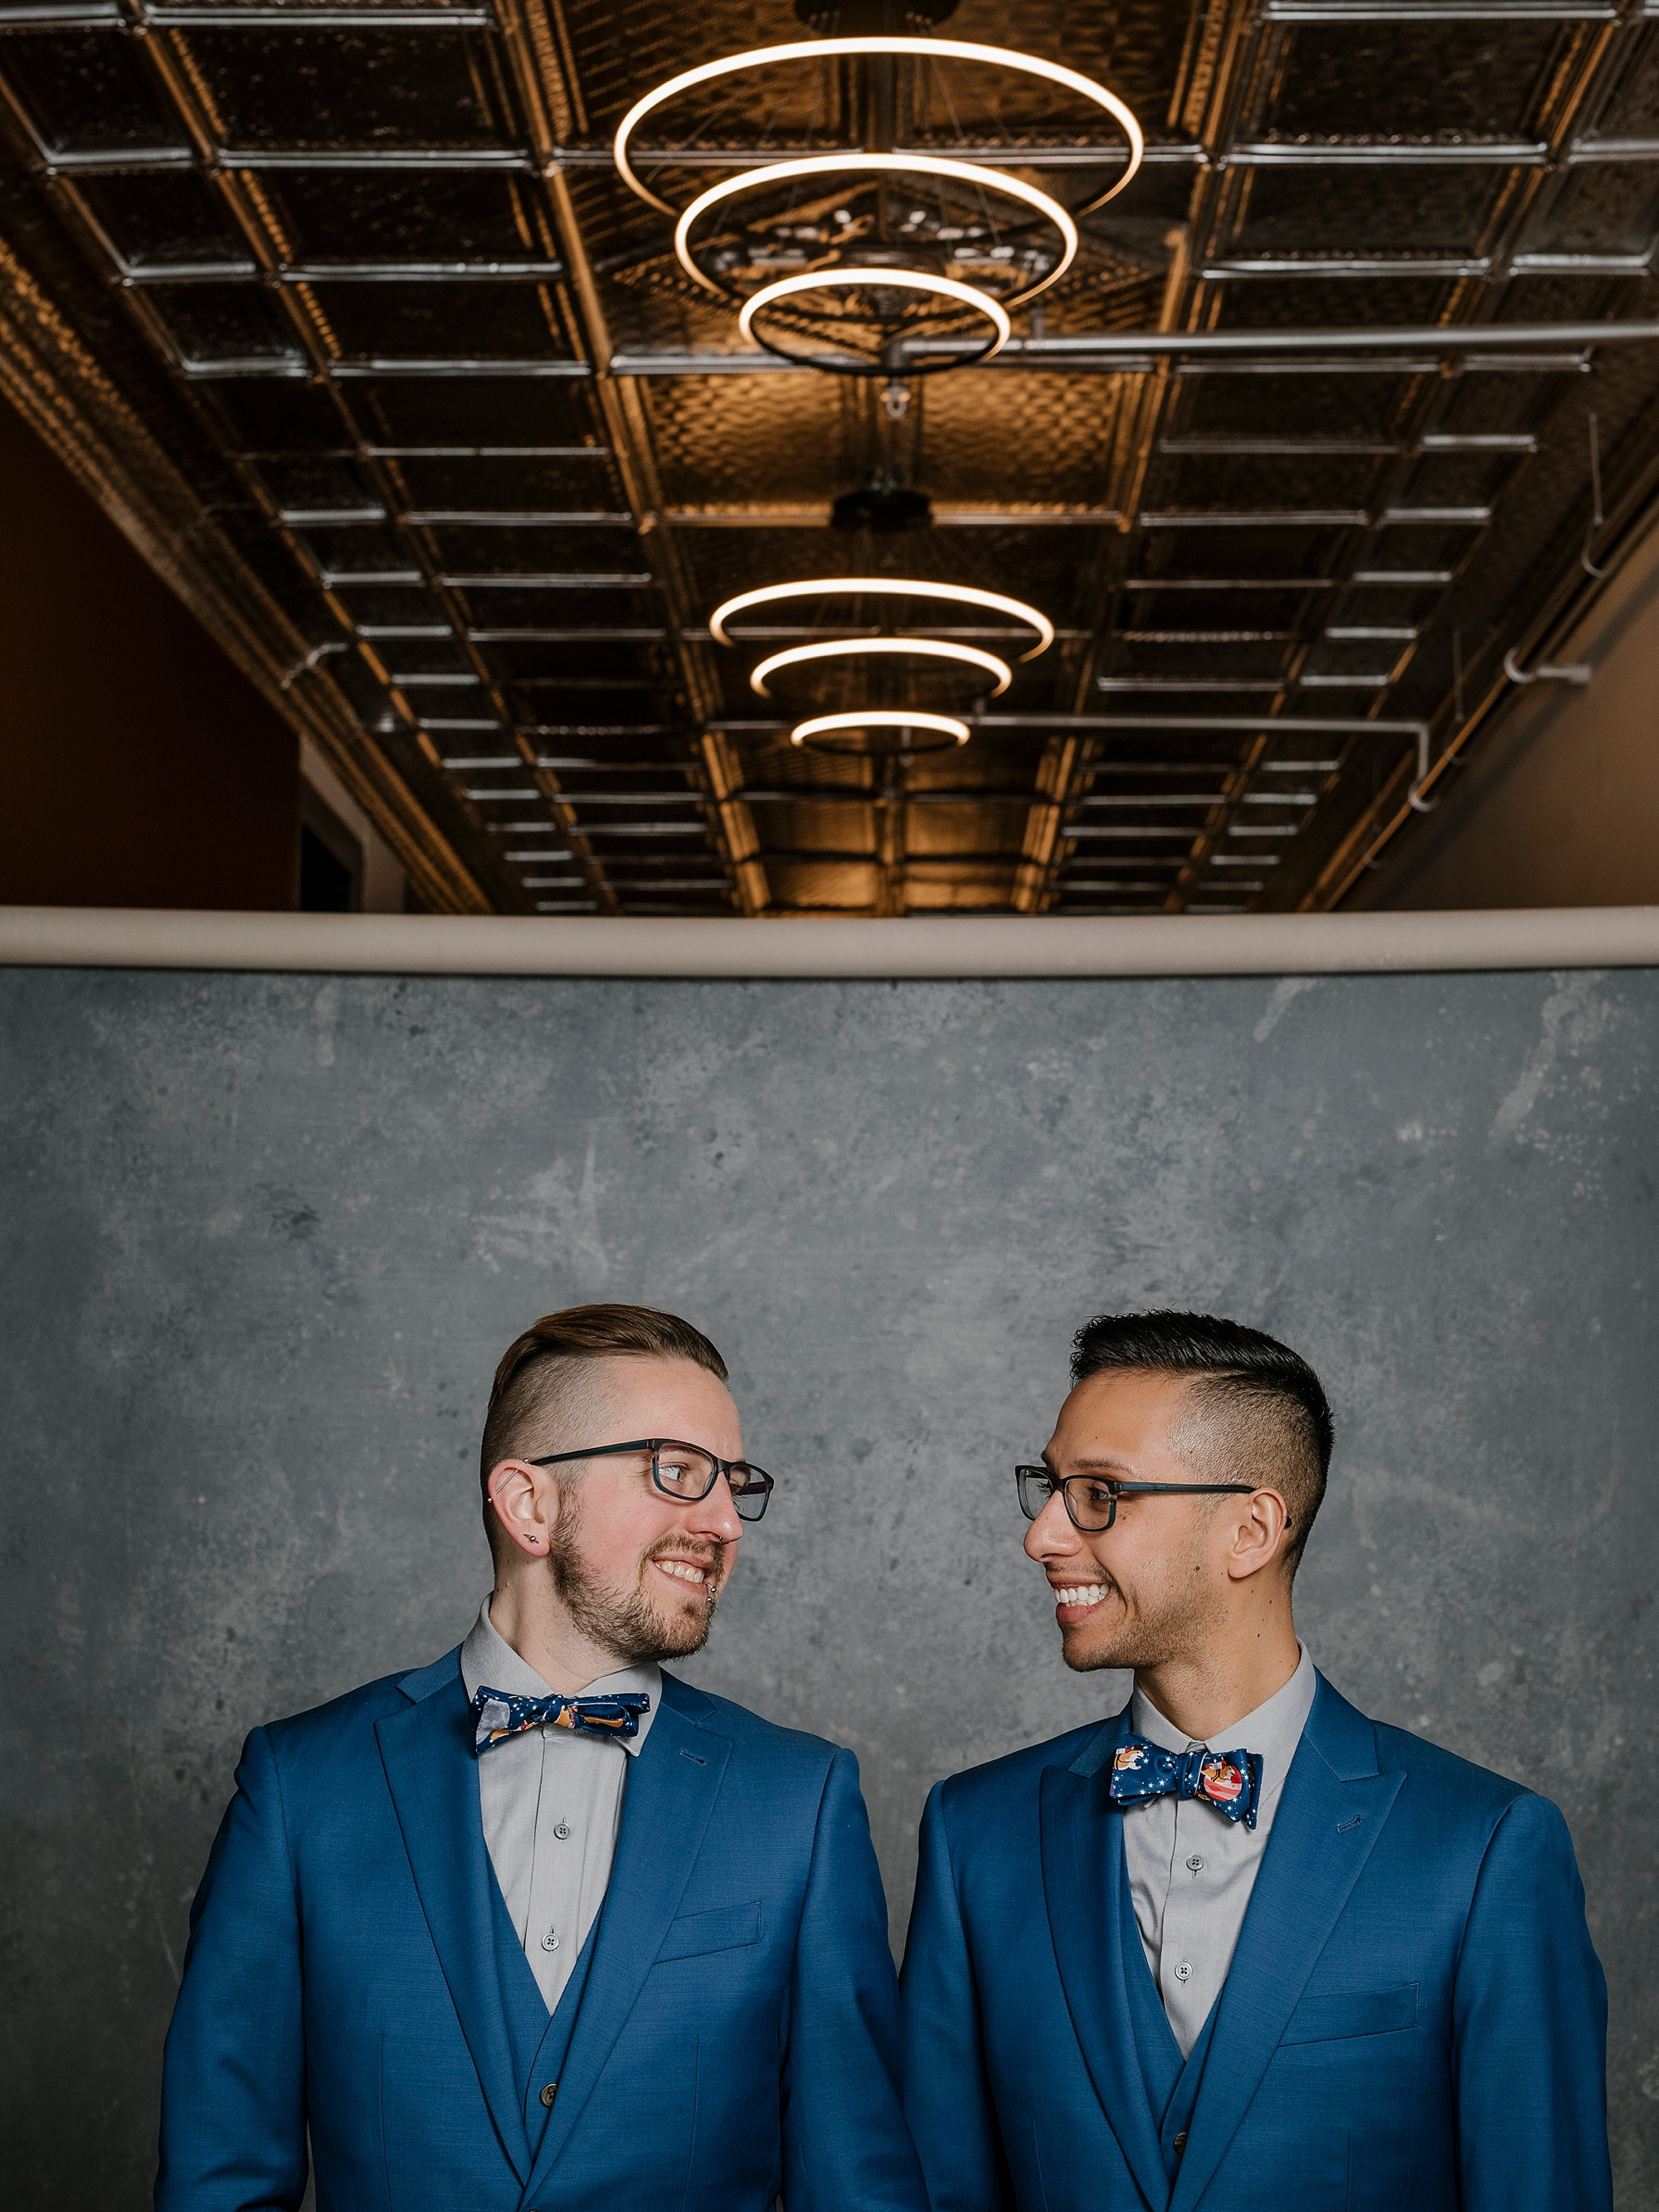 Joe_Mac_Creative_Philadelphia_Philly_LGBT_Gay_Engagement_Wedding_Photography__0089.jpg